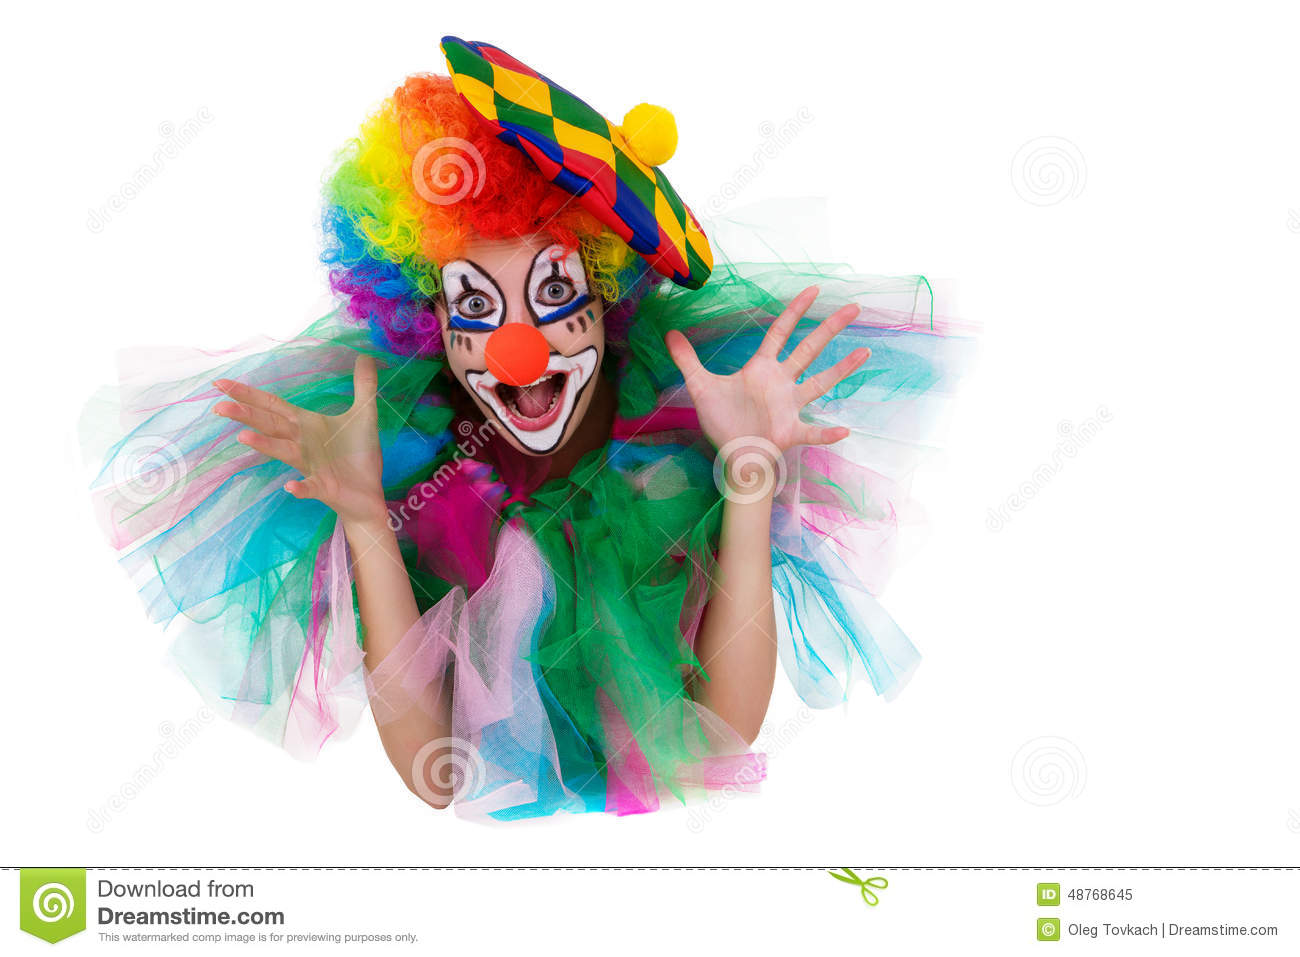 Girl In Cap And Clown Costume With A Bouquet Of Flowers Puts Out The